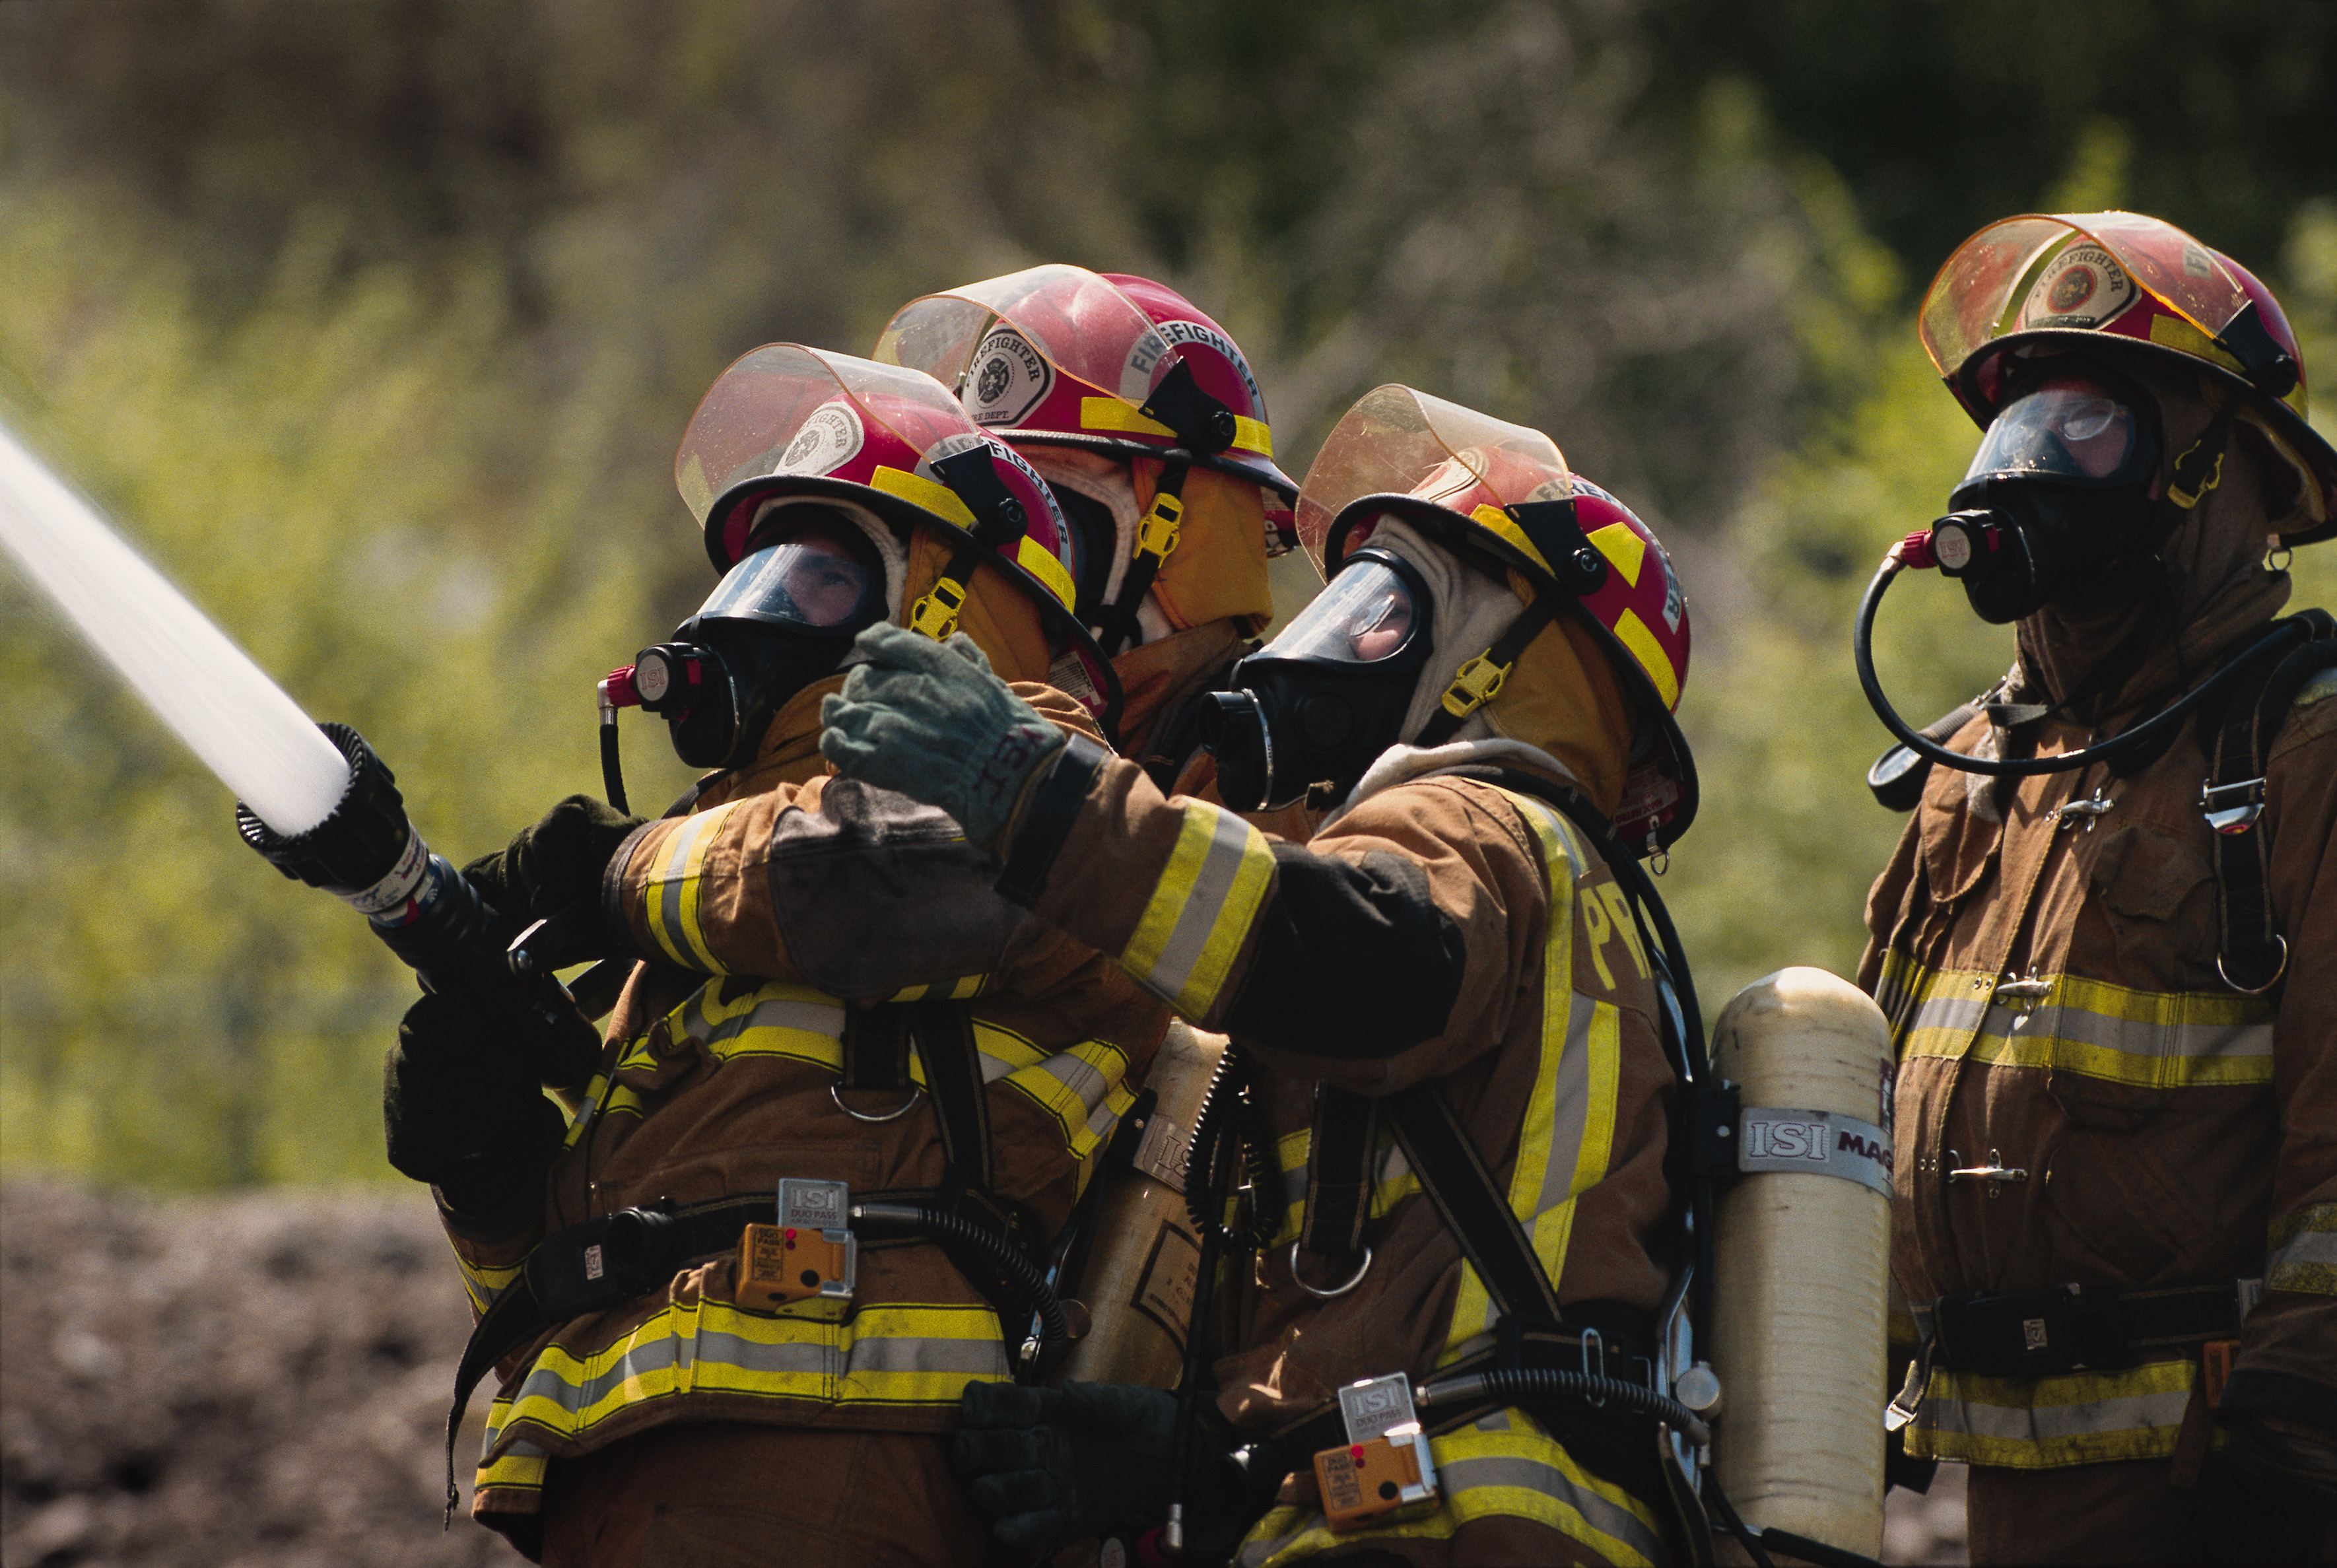 Obtaining a Career in the Fire Service